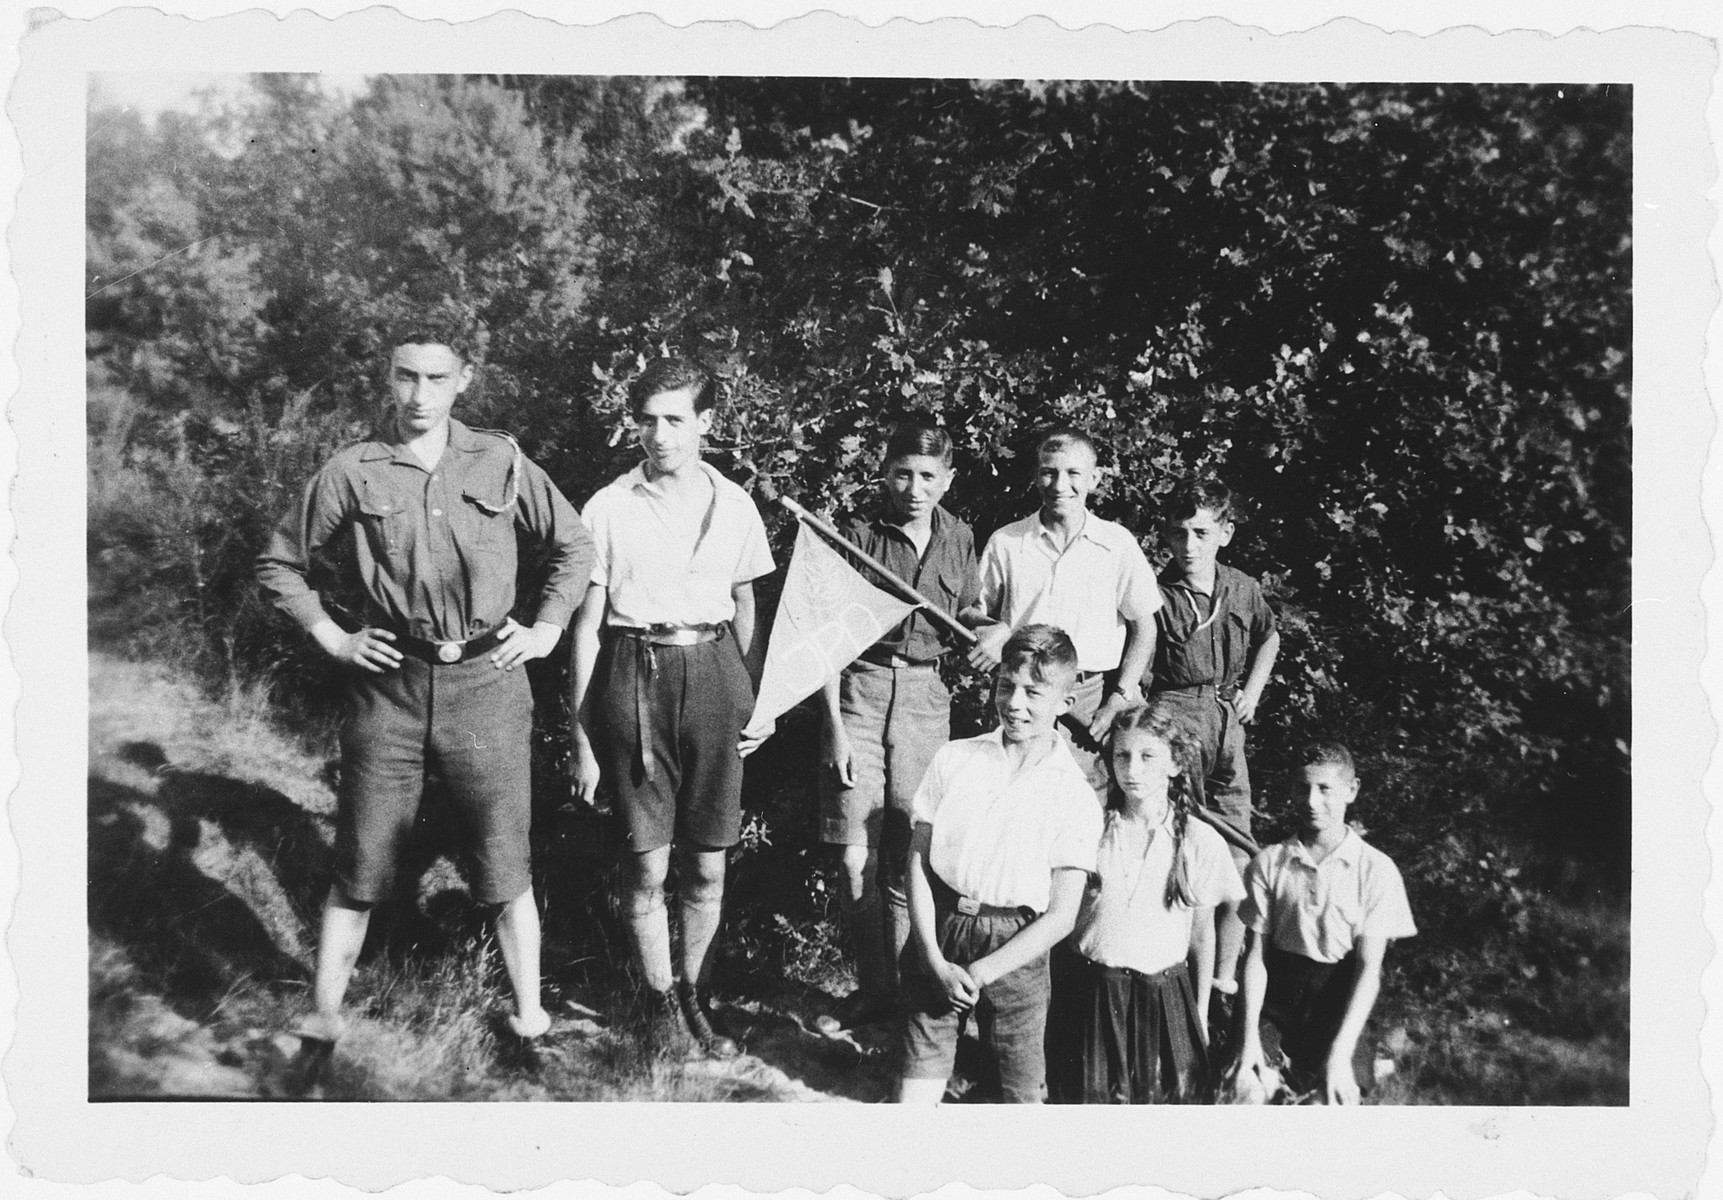 German Jewish boy scouts (Pfadfinder) go on an outing in Verden.  Pictured second from the left is Heinz Josephs.